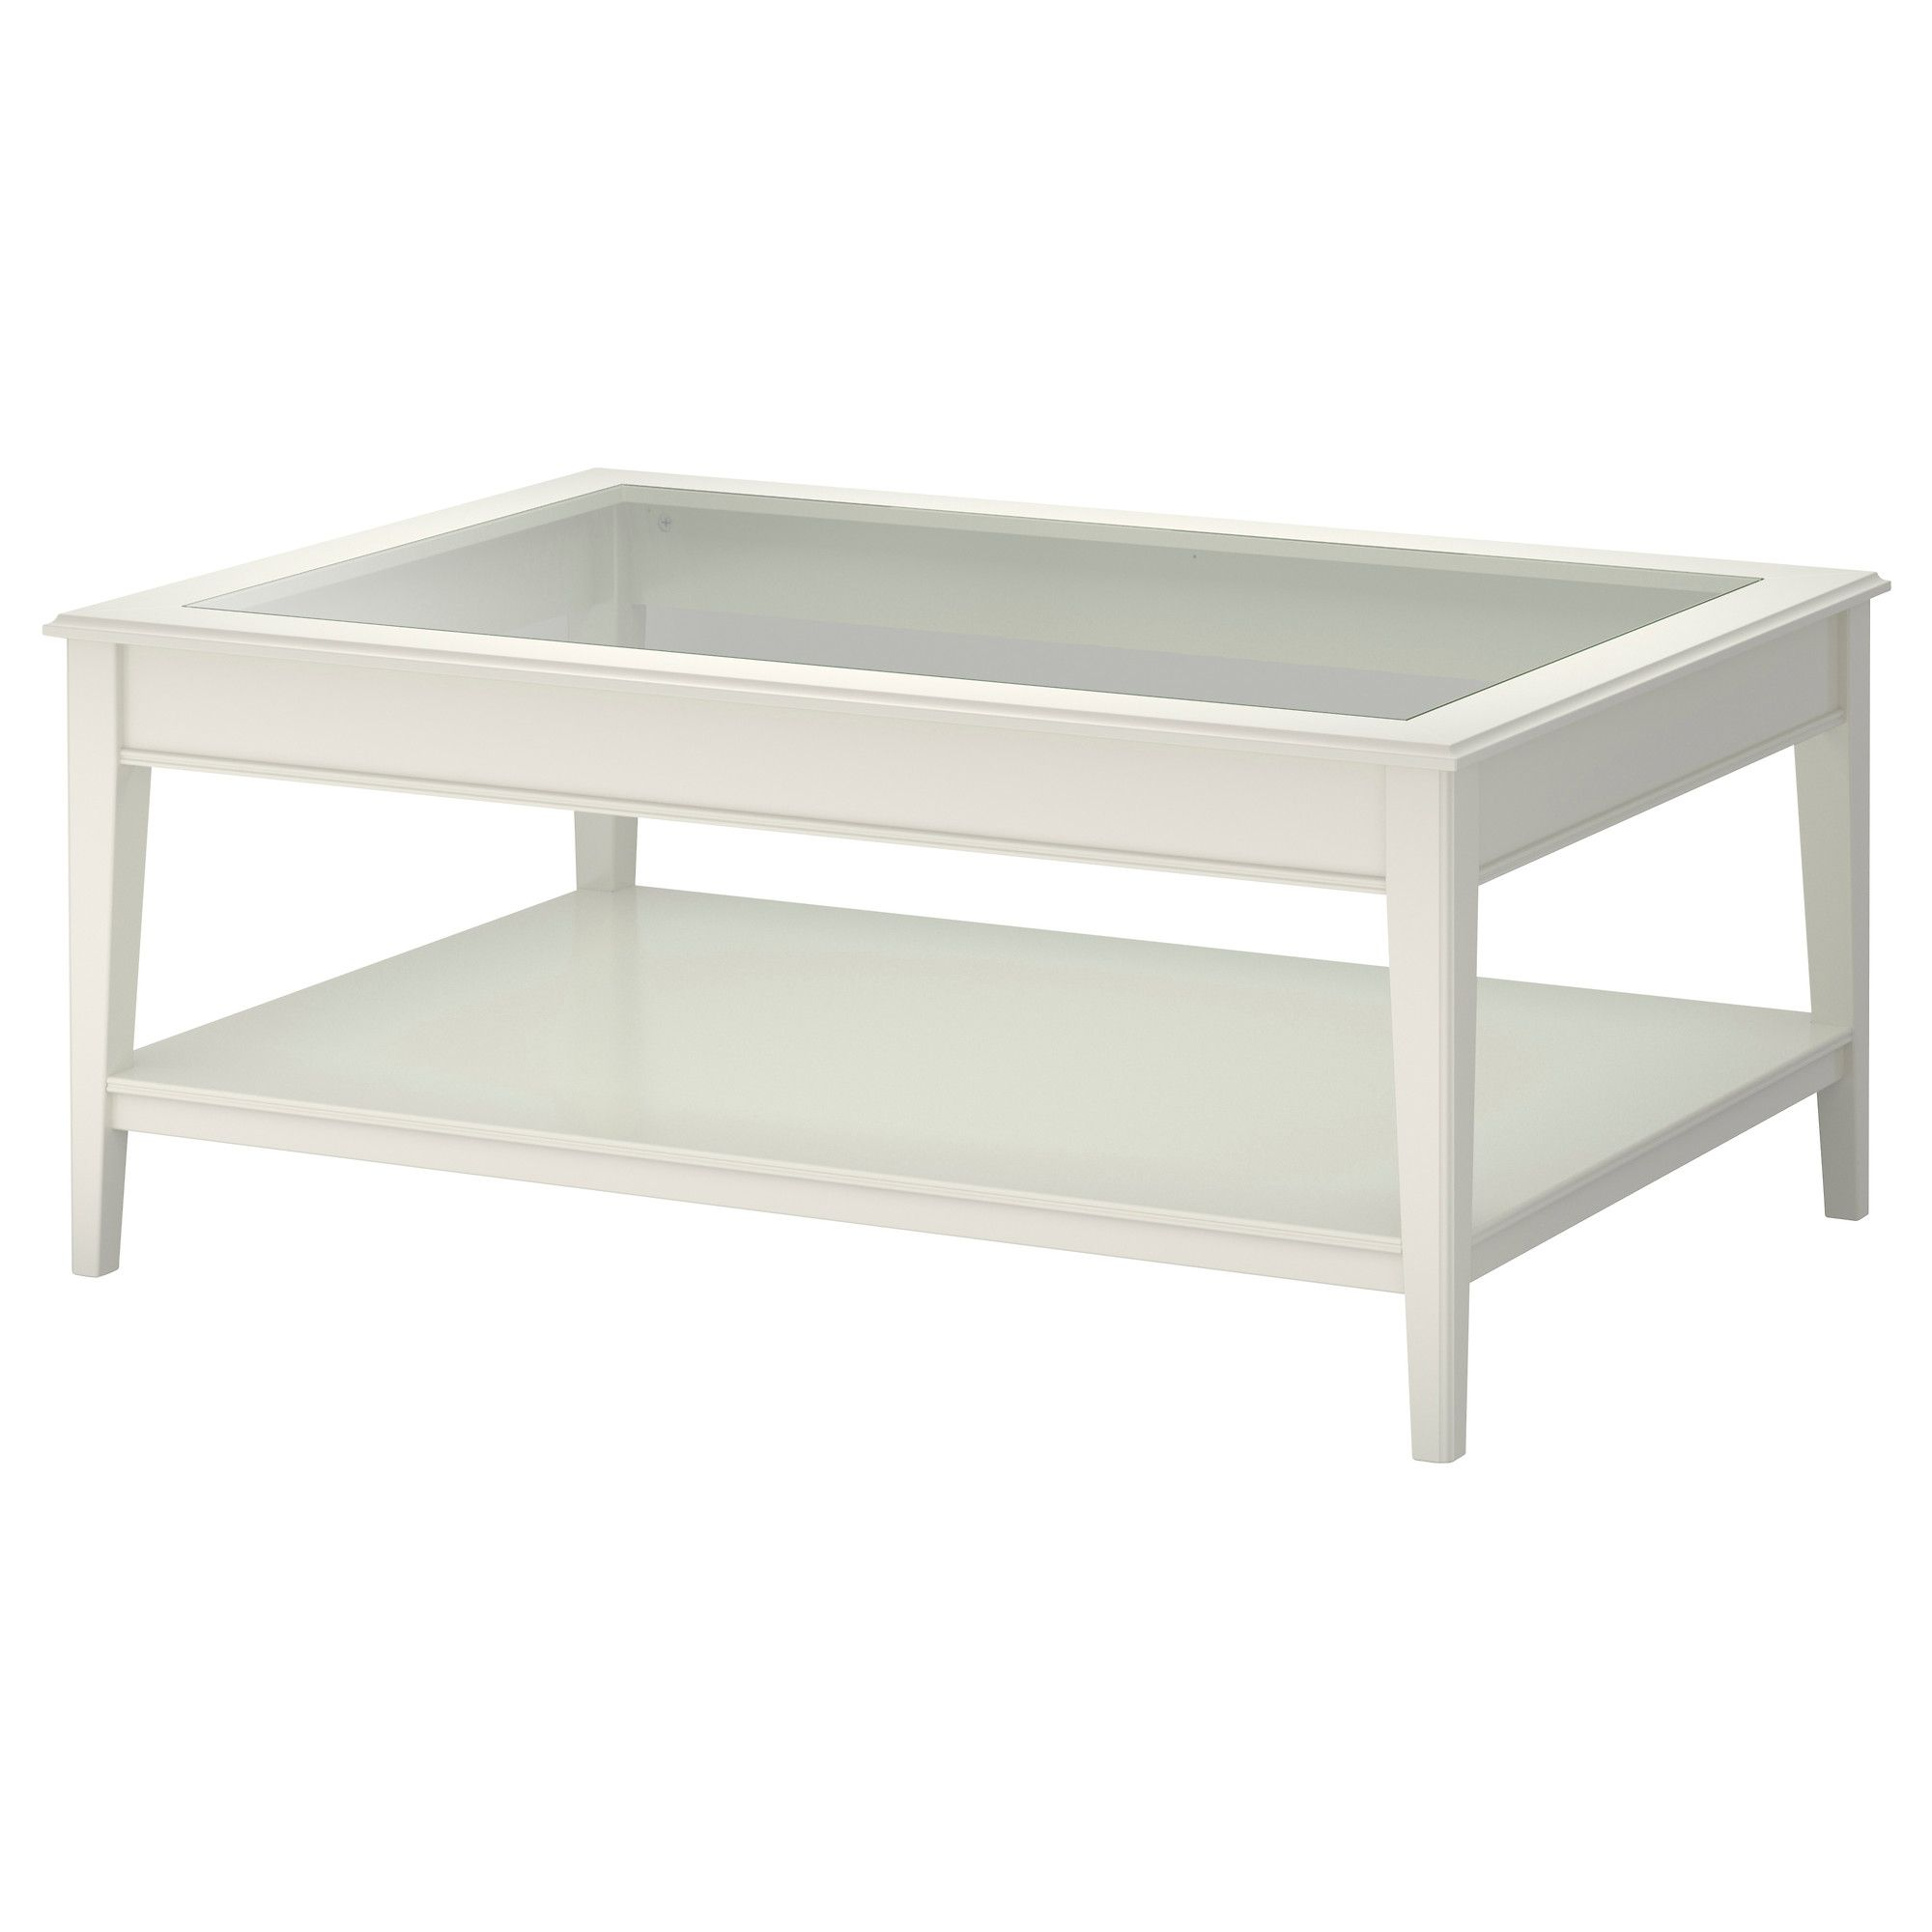 Ikea Liatorp Tisch display coffee table put stones and led votive lights the